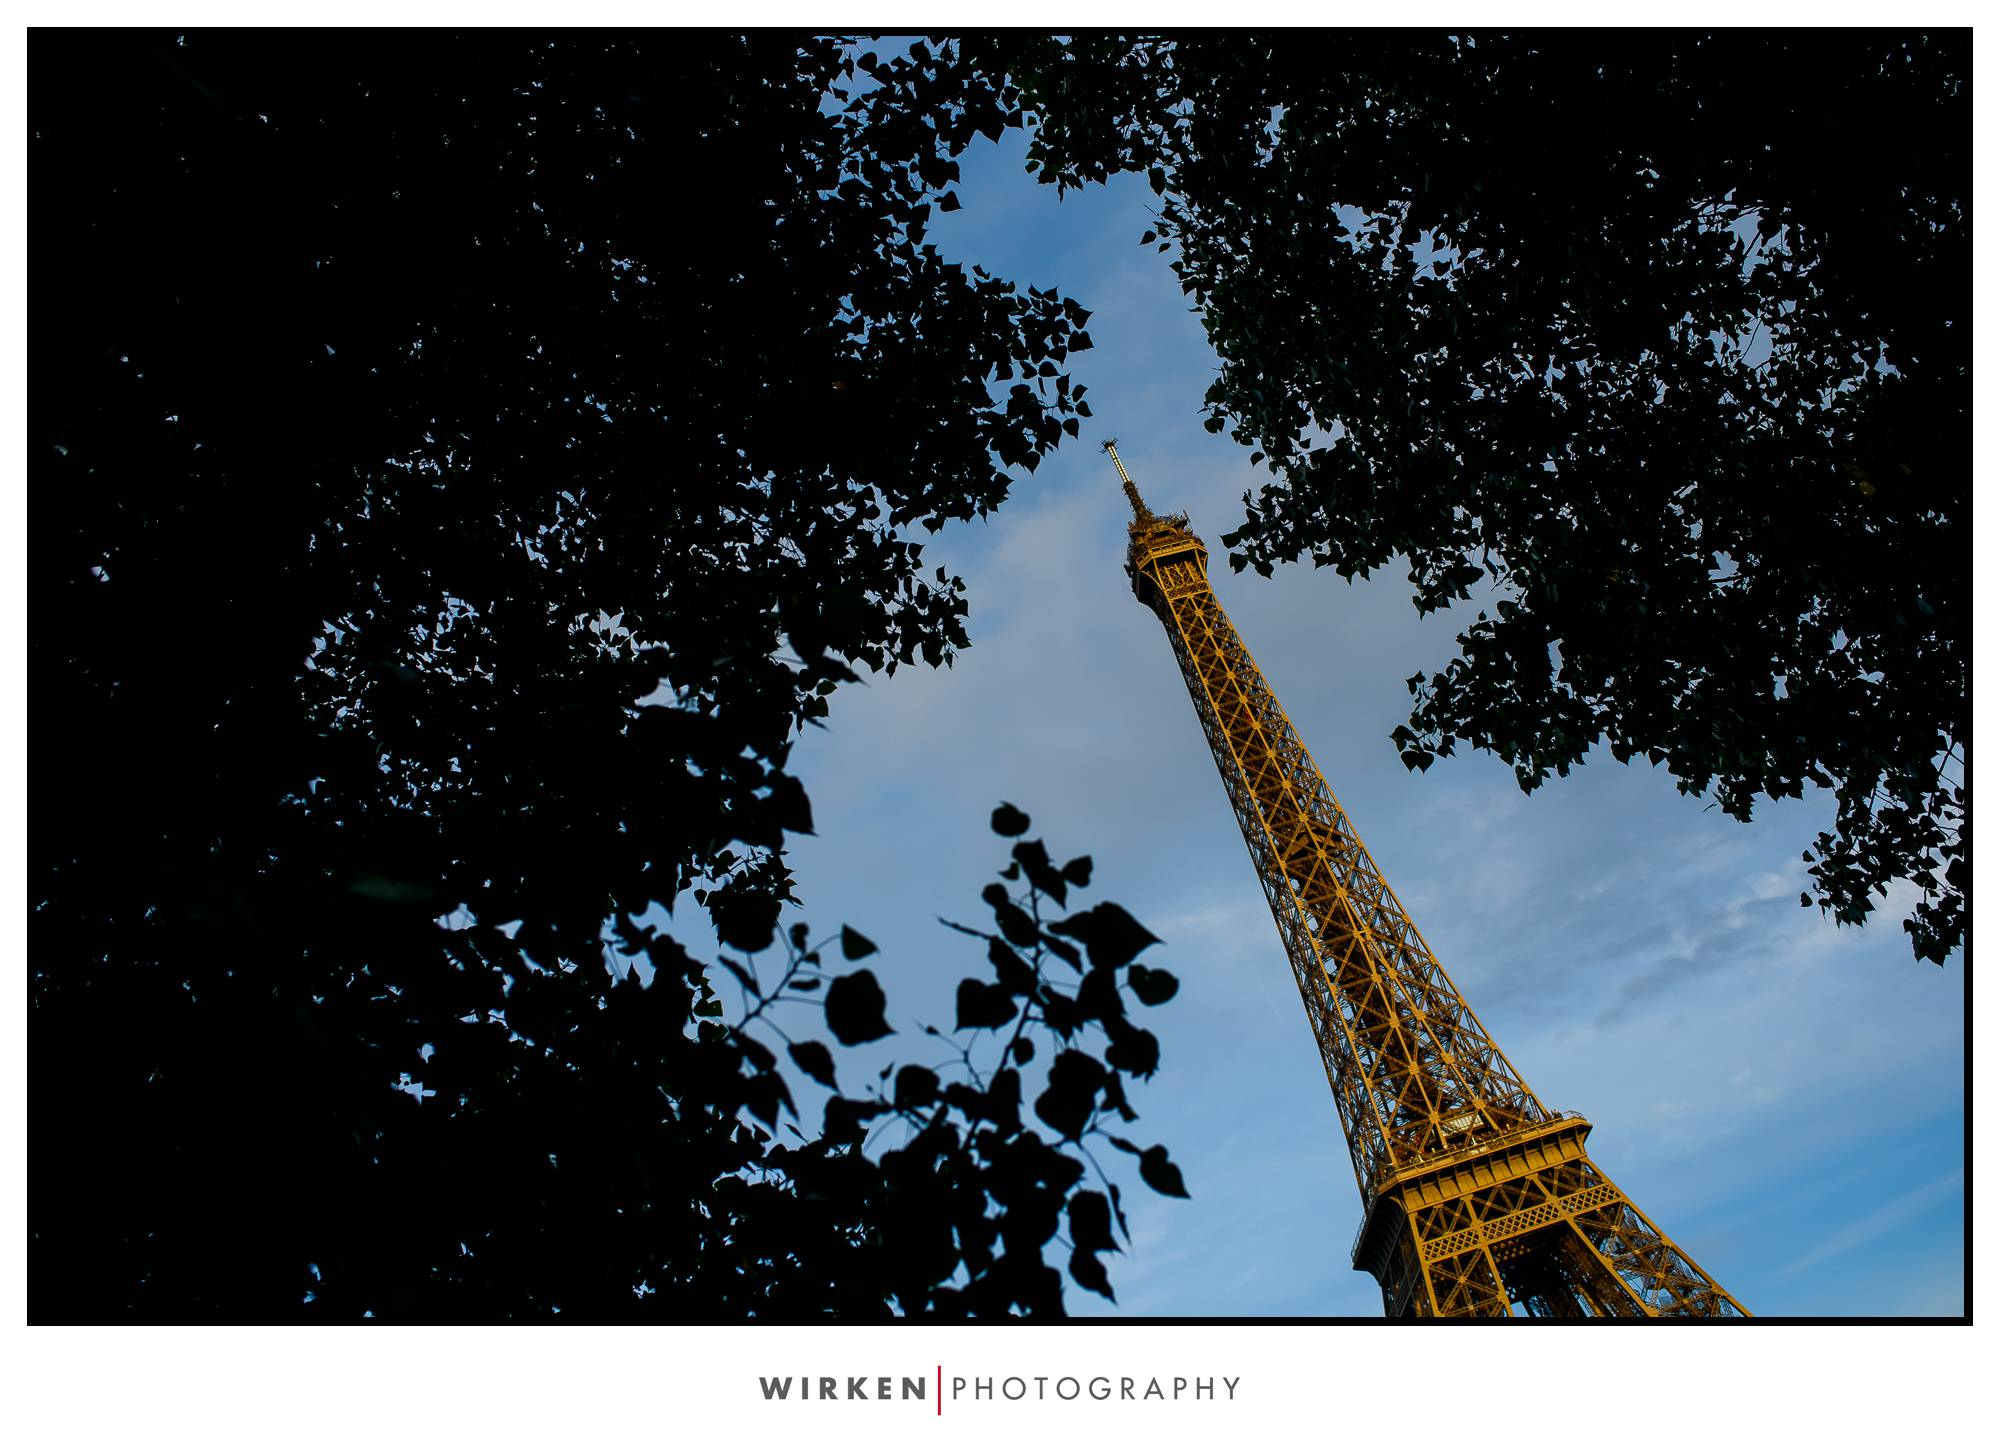 eiffel tower in france on famliy vacation